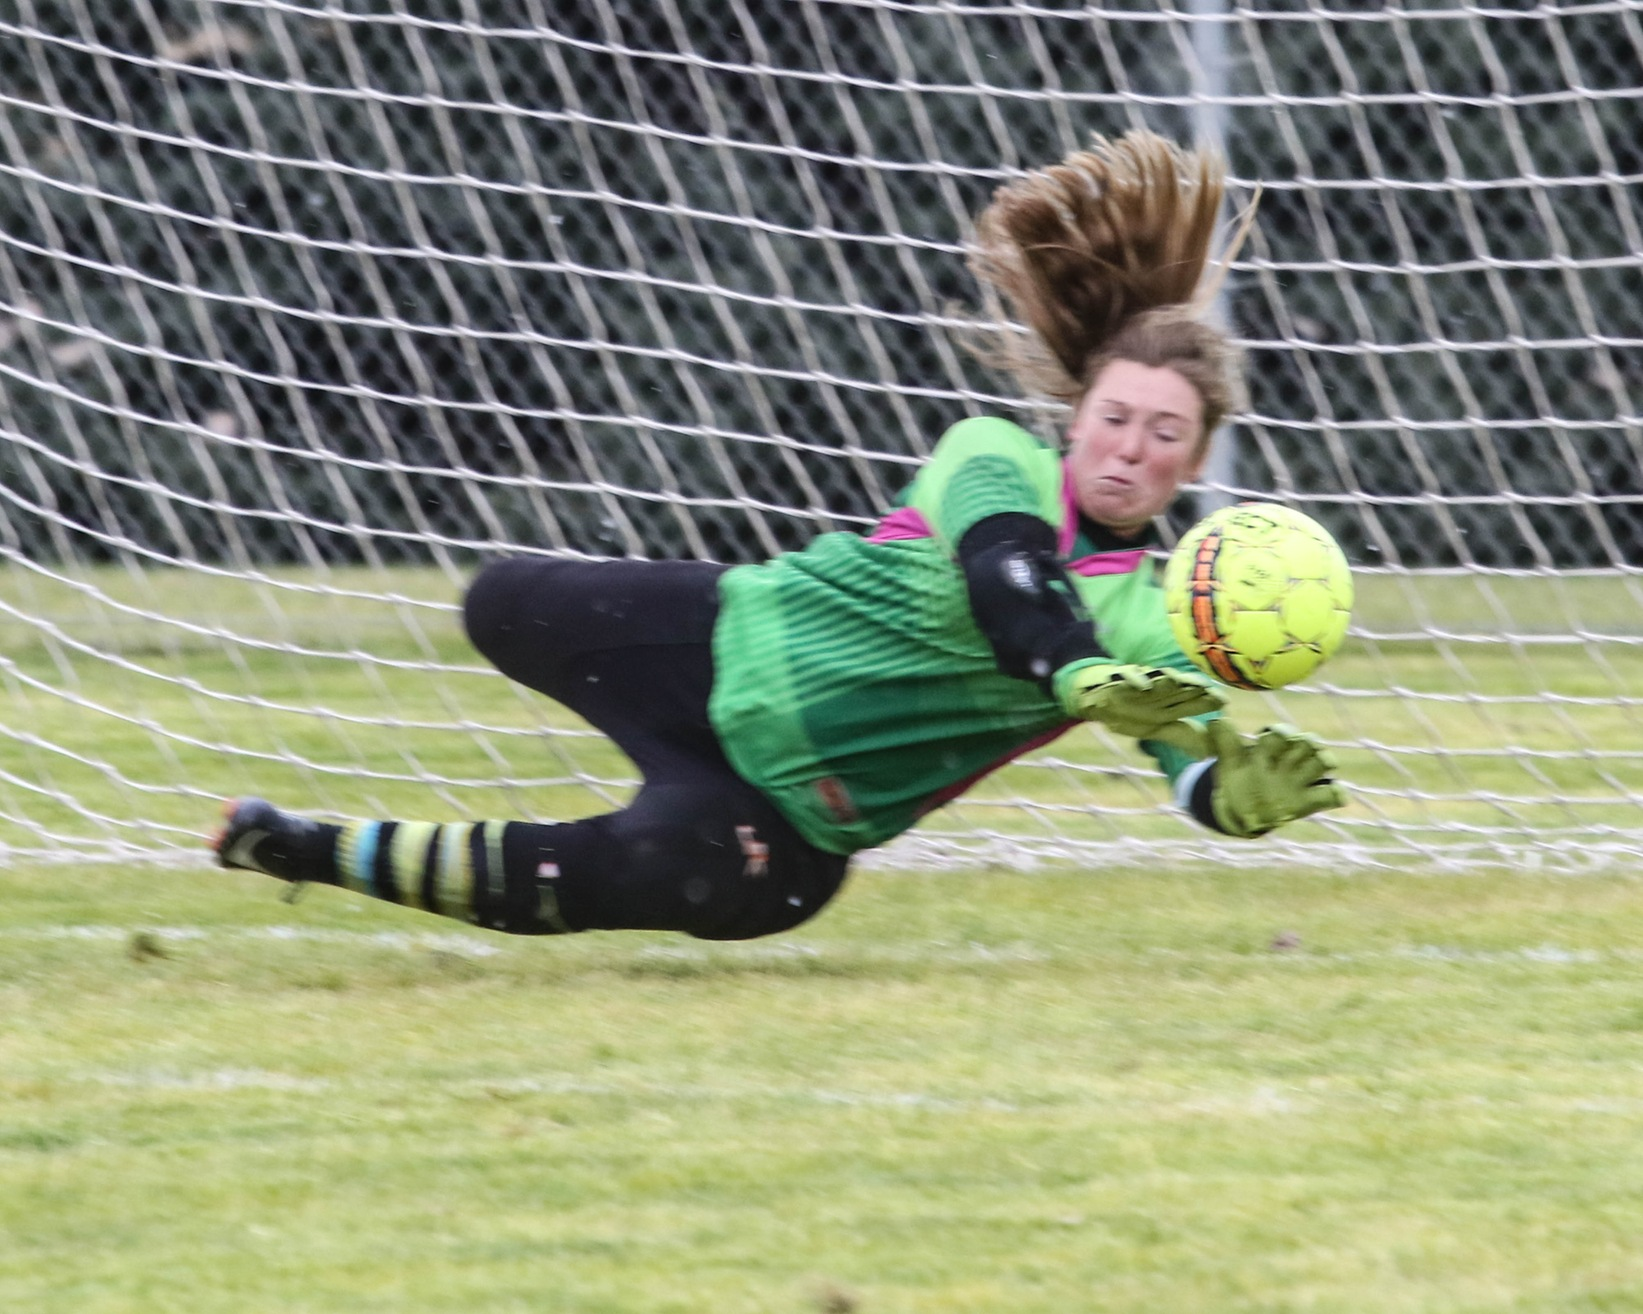 WNCC, NJC women play to a 2-2 tie